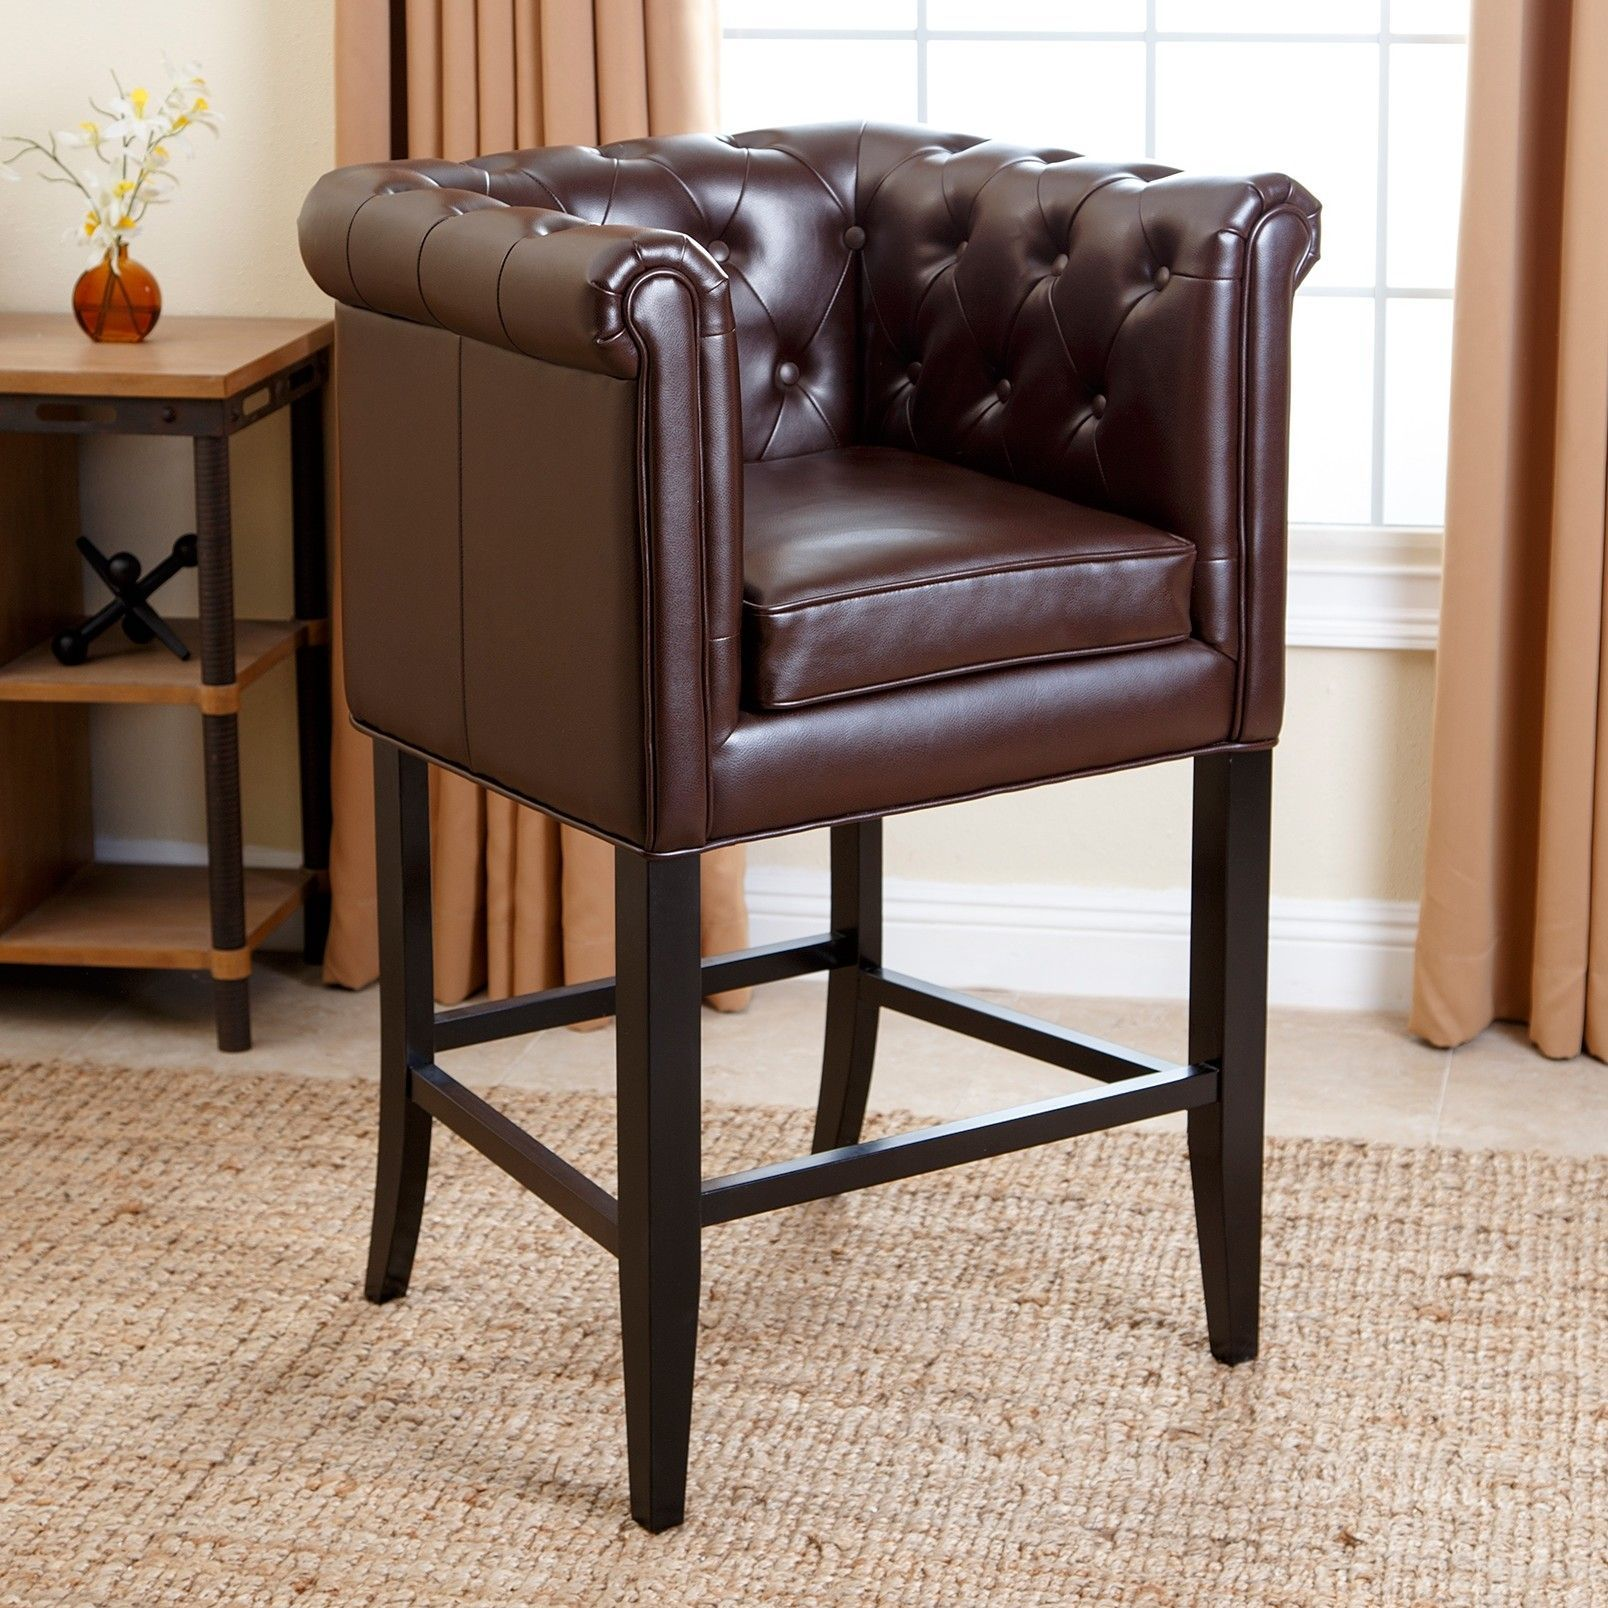 Chesterfield Bar Stool with Cushion | Products | Pinterest